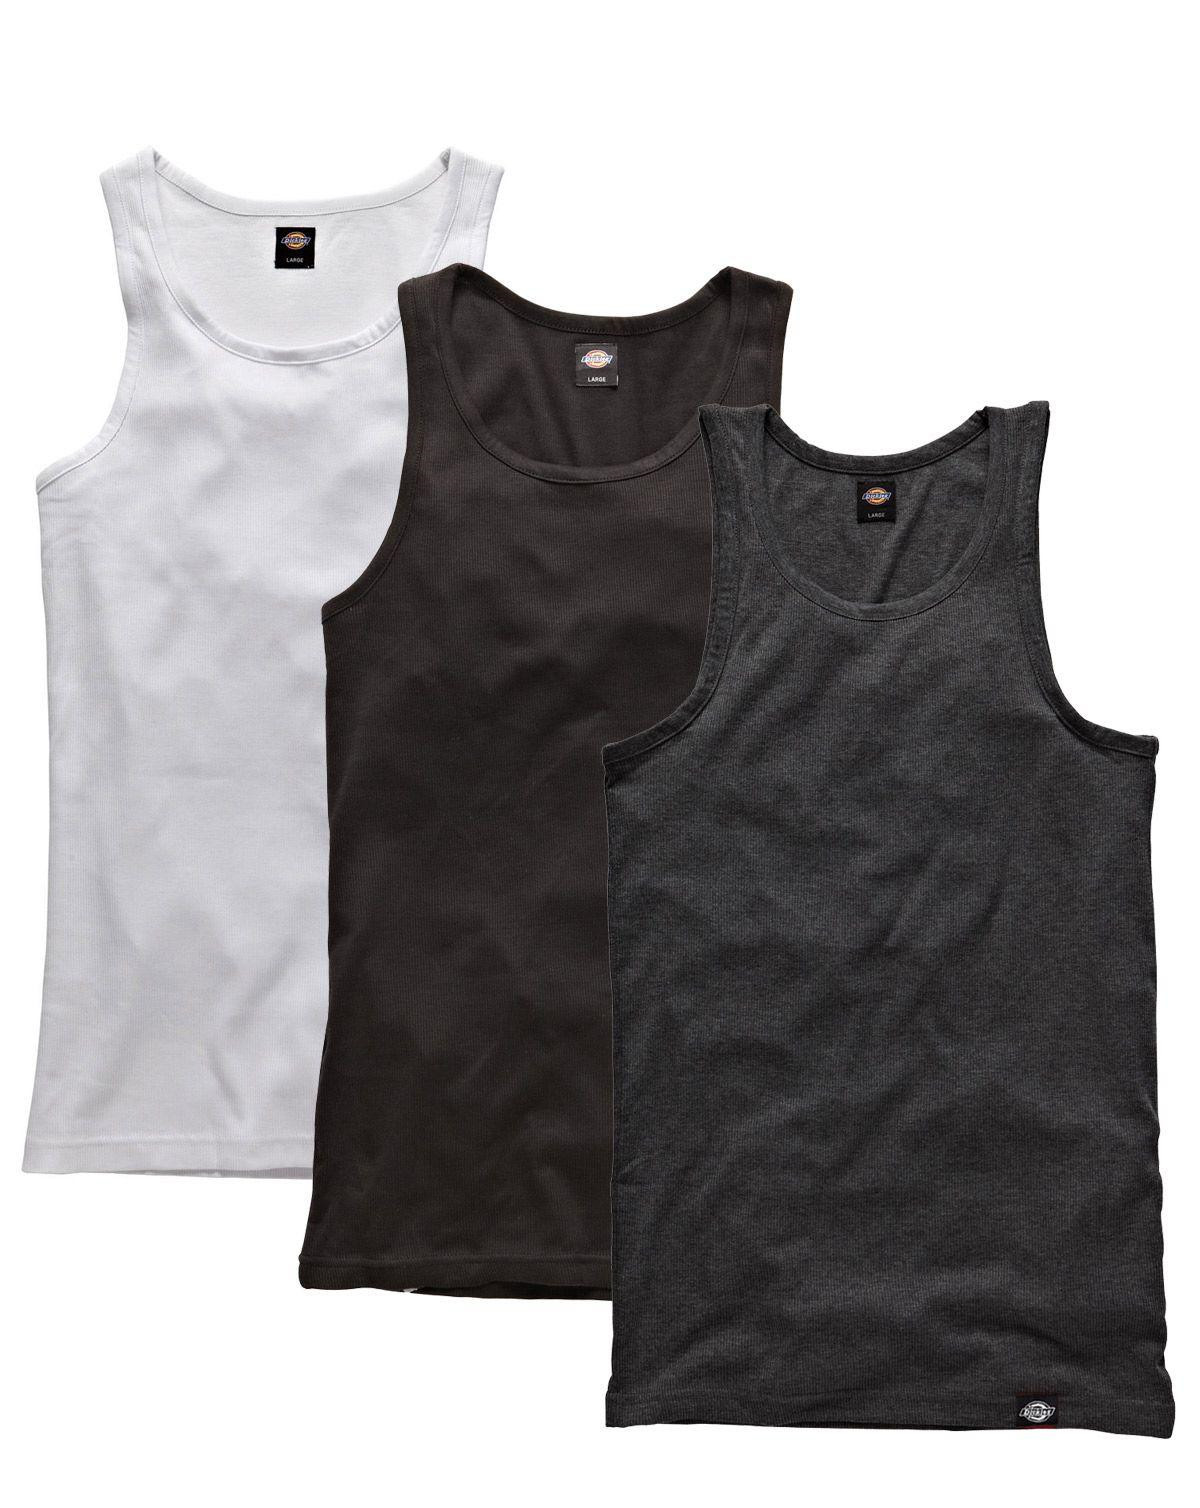 Dickies Tank tops - 3-Pack (Black, white and gray melange, XS)